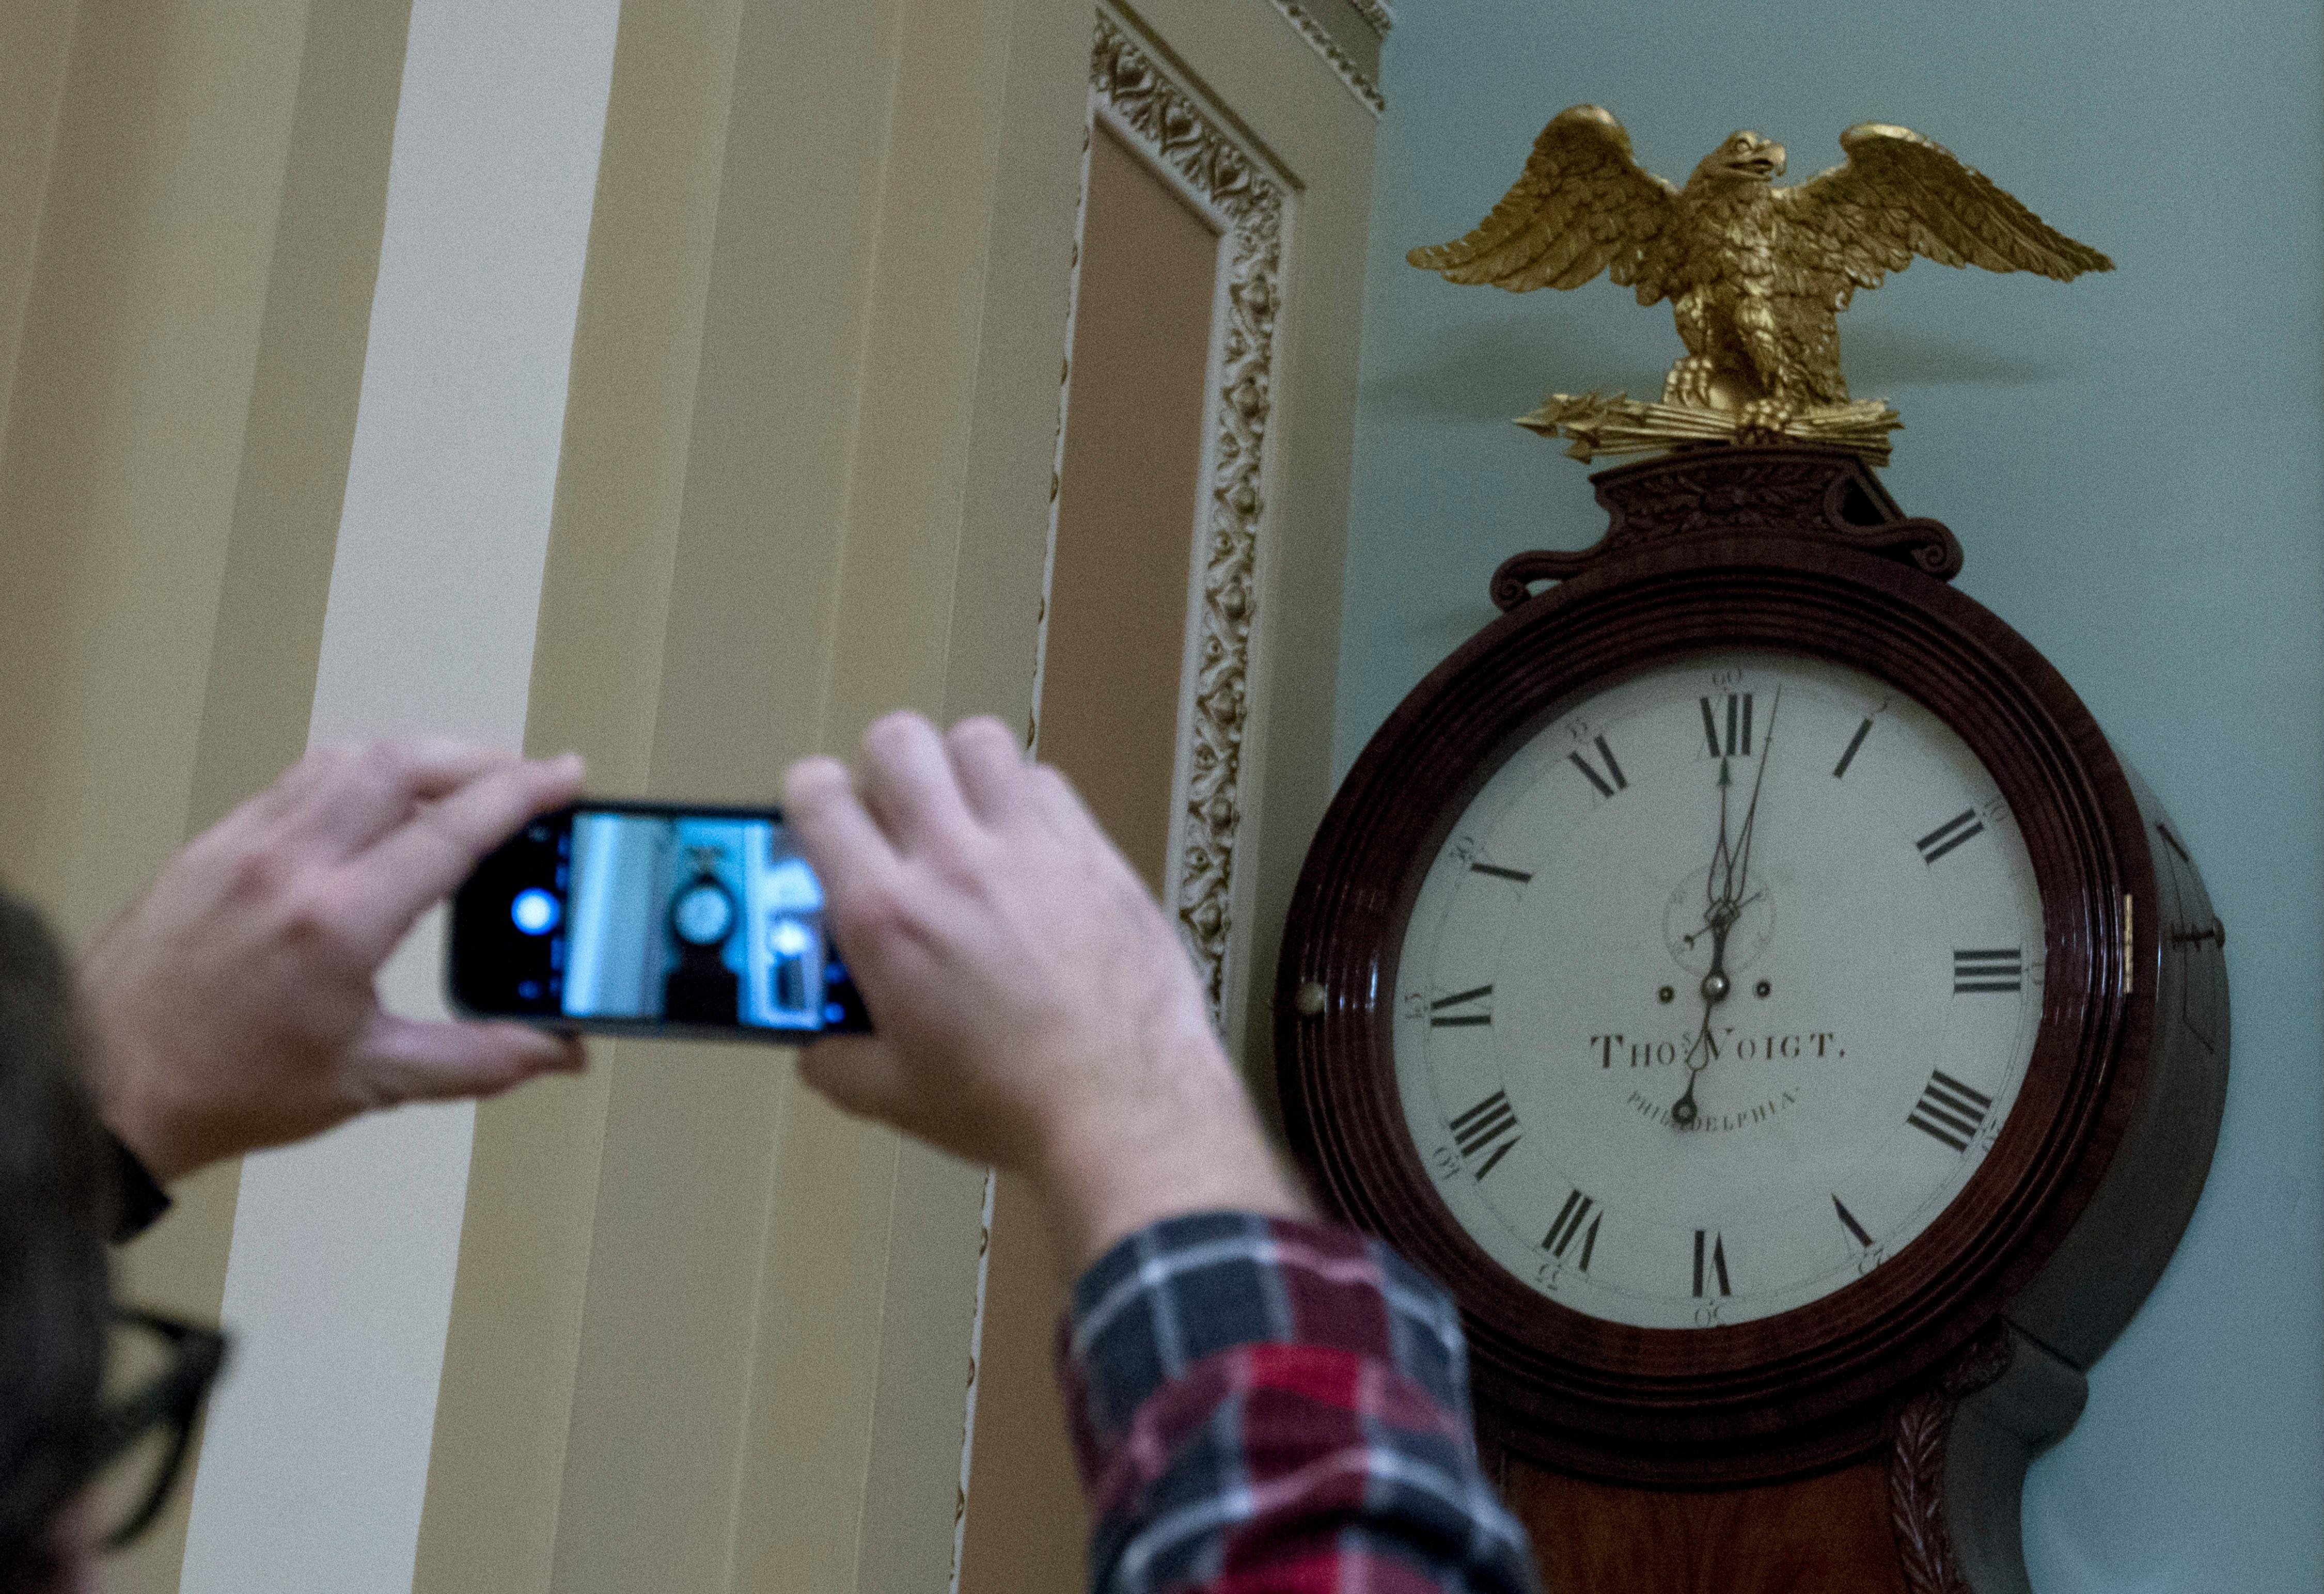 Photographers take a picture of the Ohio Clock shortly after midnight early Friday, Feb. 9, 2018, outside the Senate chamber at the Capitol, in Washington. (AP Photo/Jose Luis Magana)